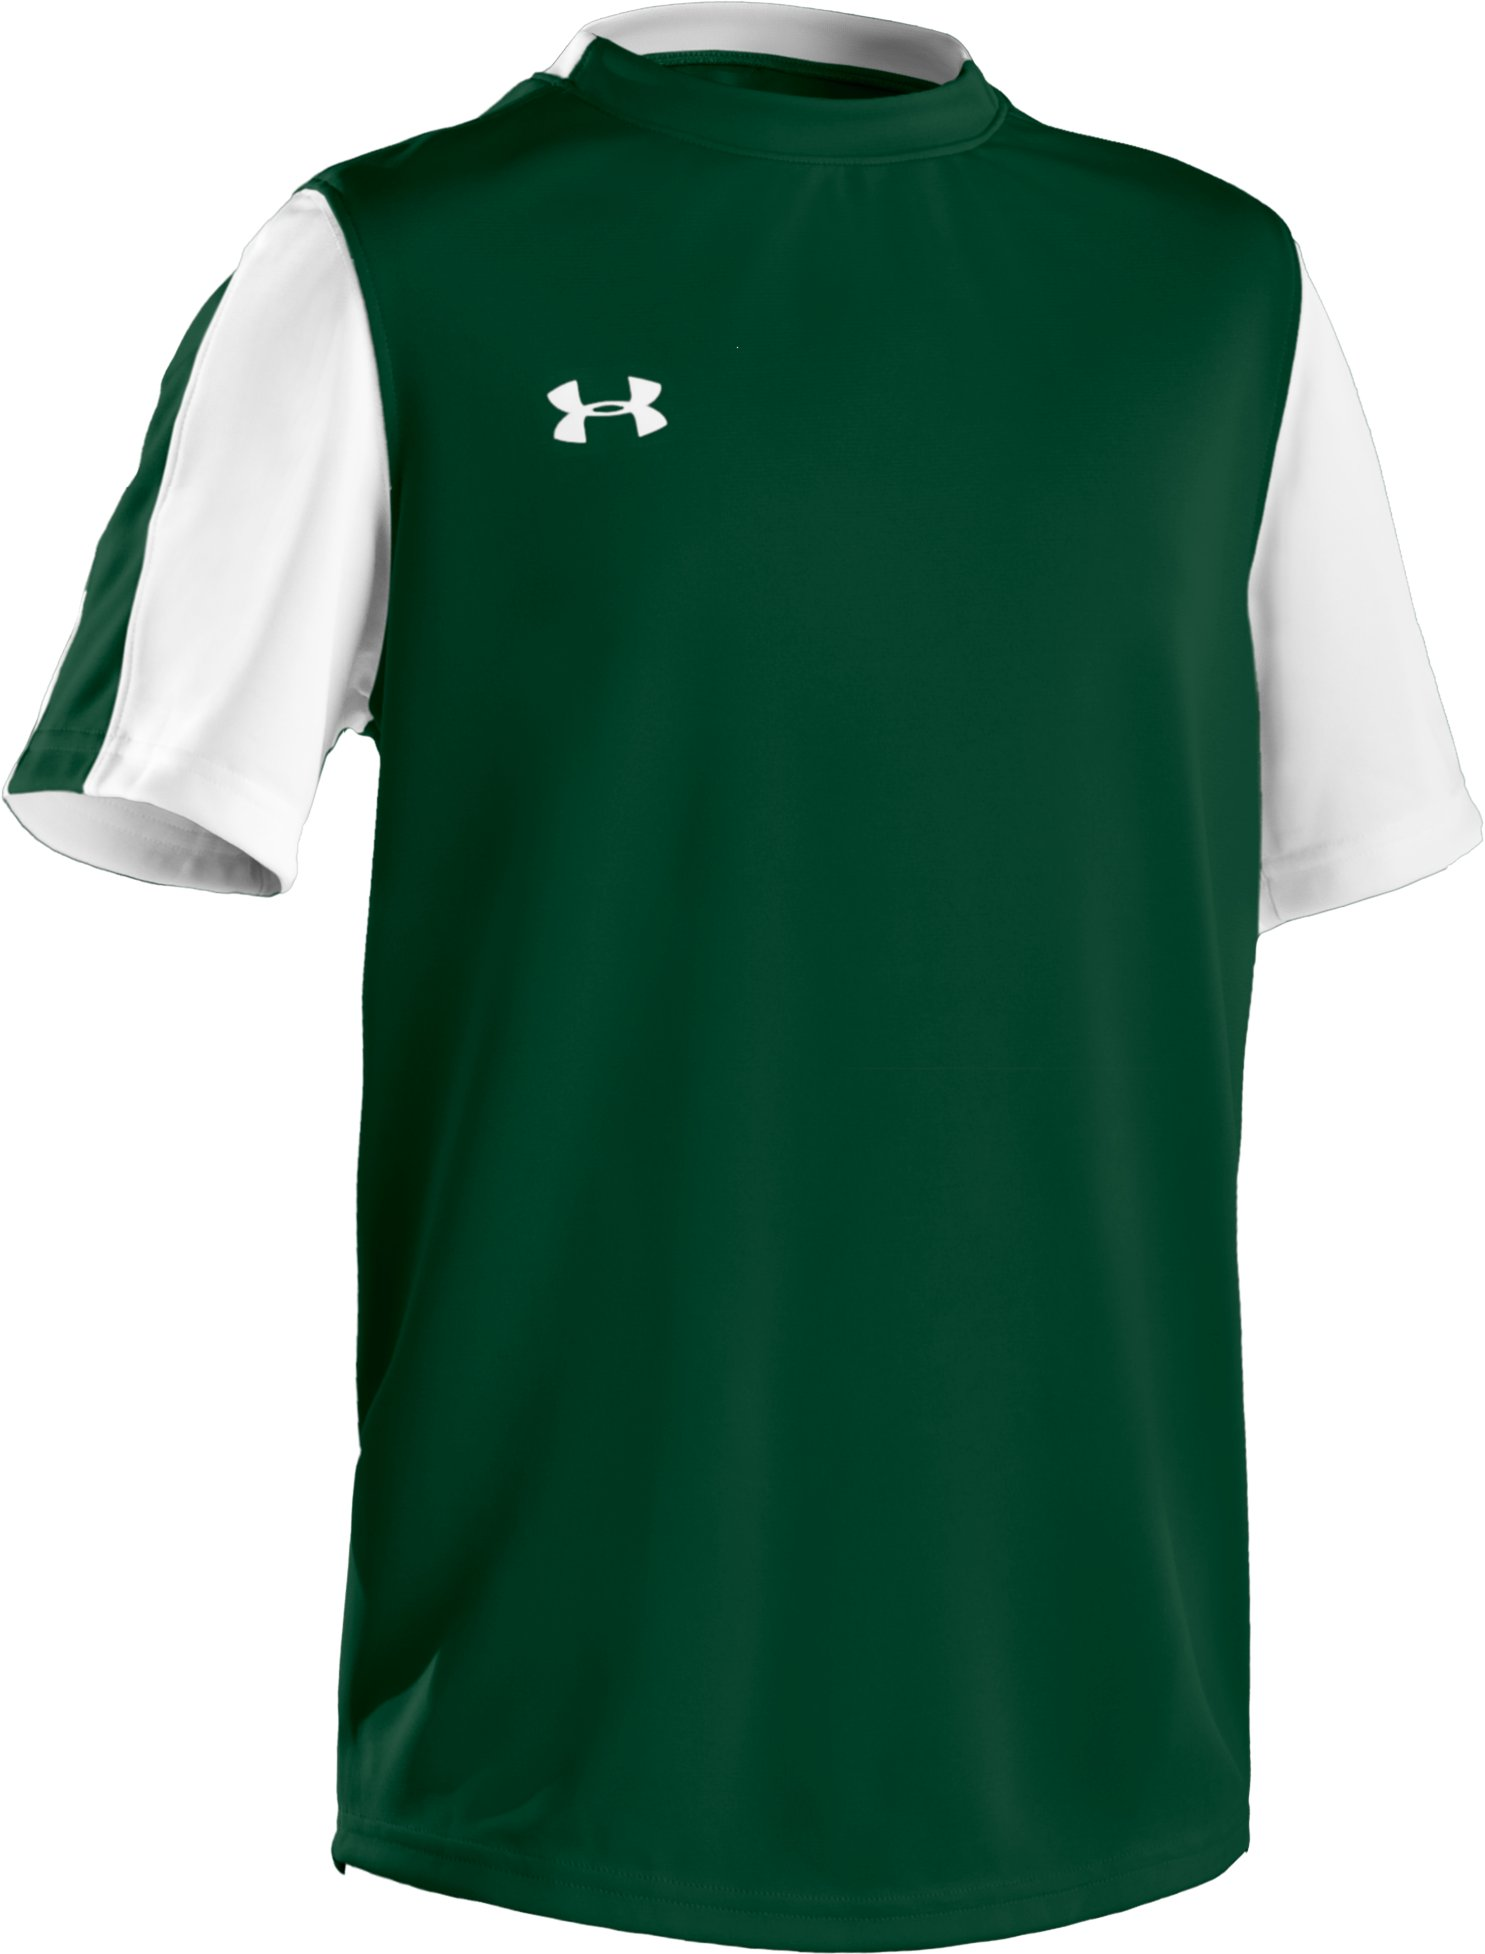 Boys' UA Classic Short Sleeve Jersey, Forest Green, undefined